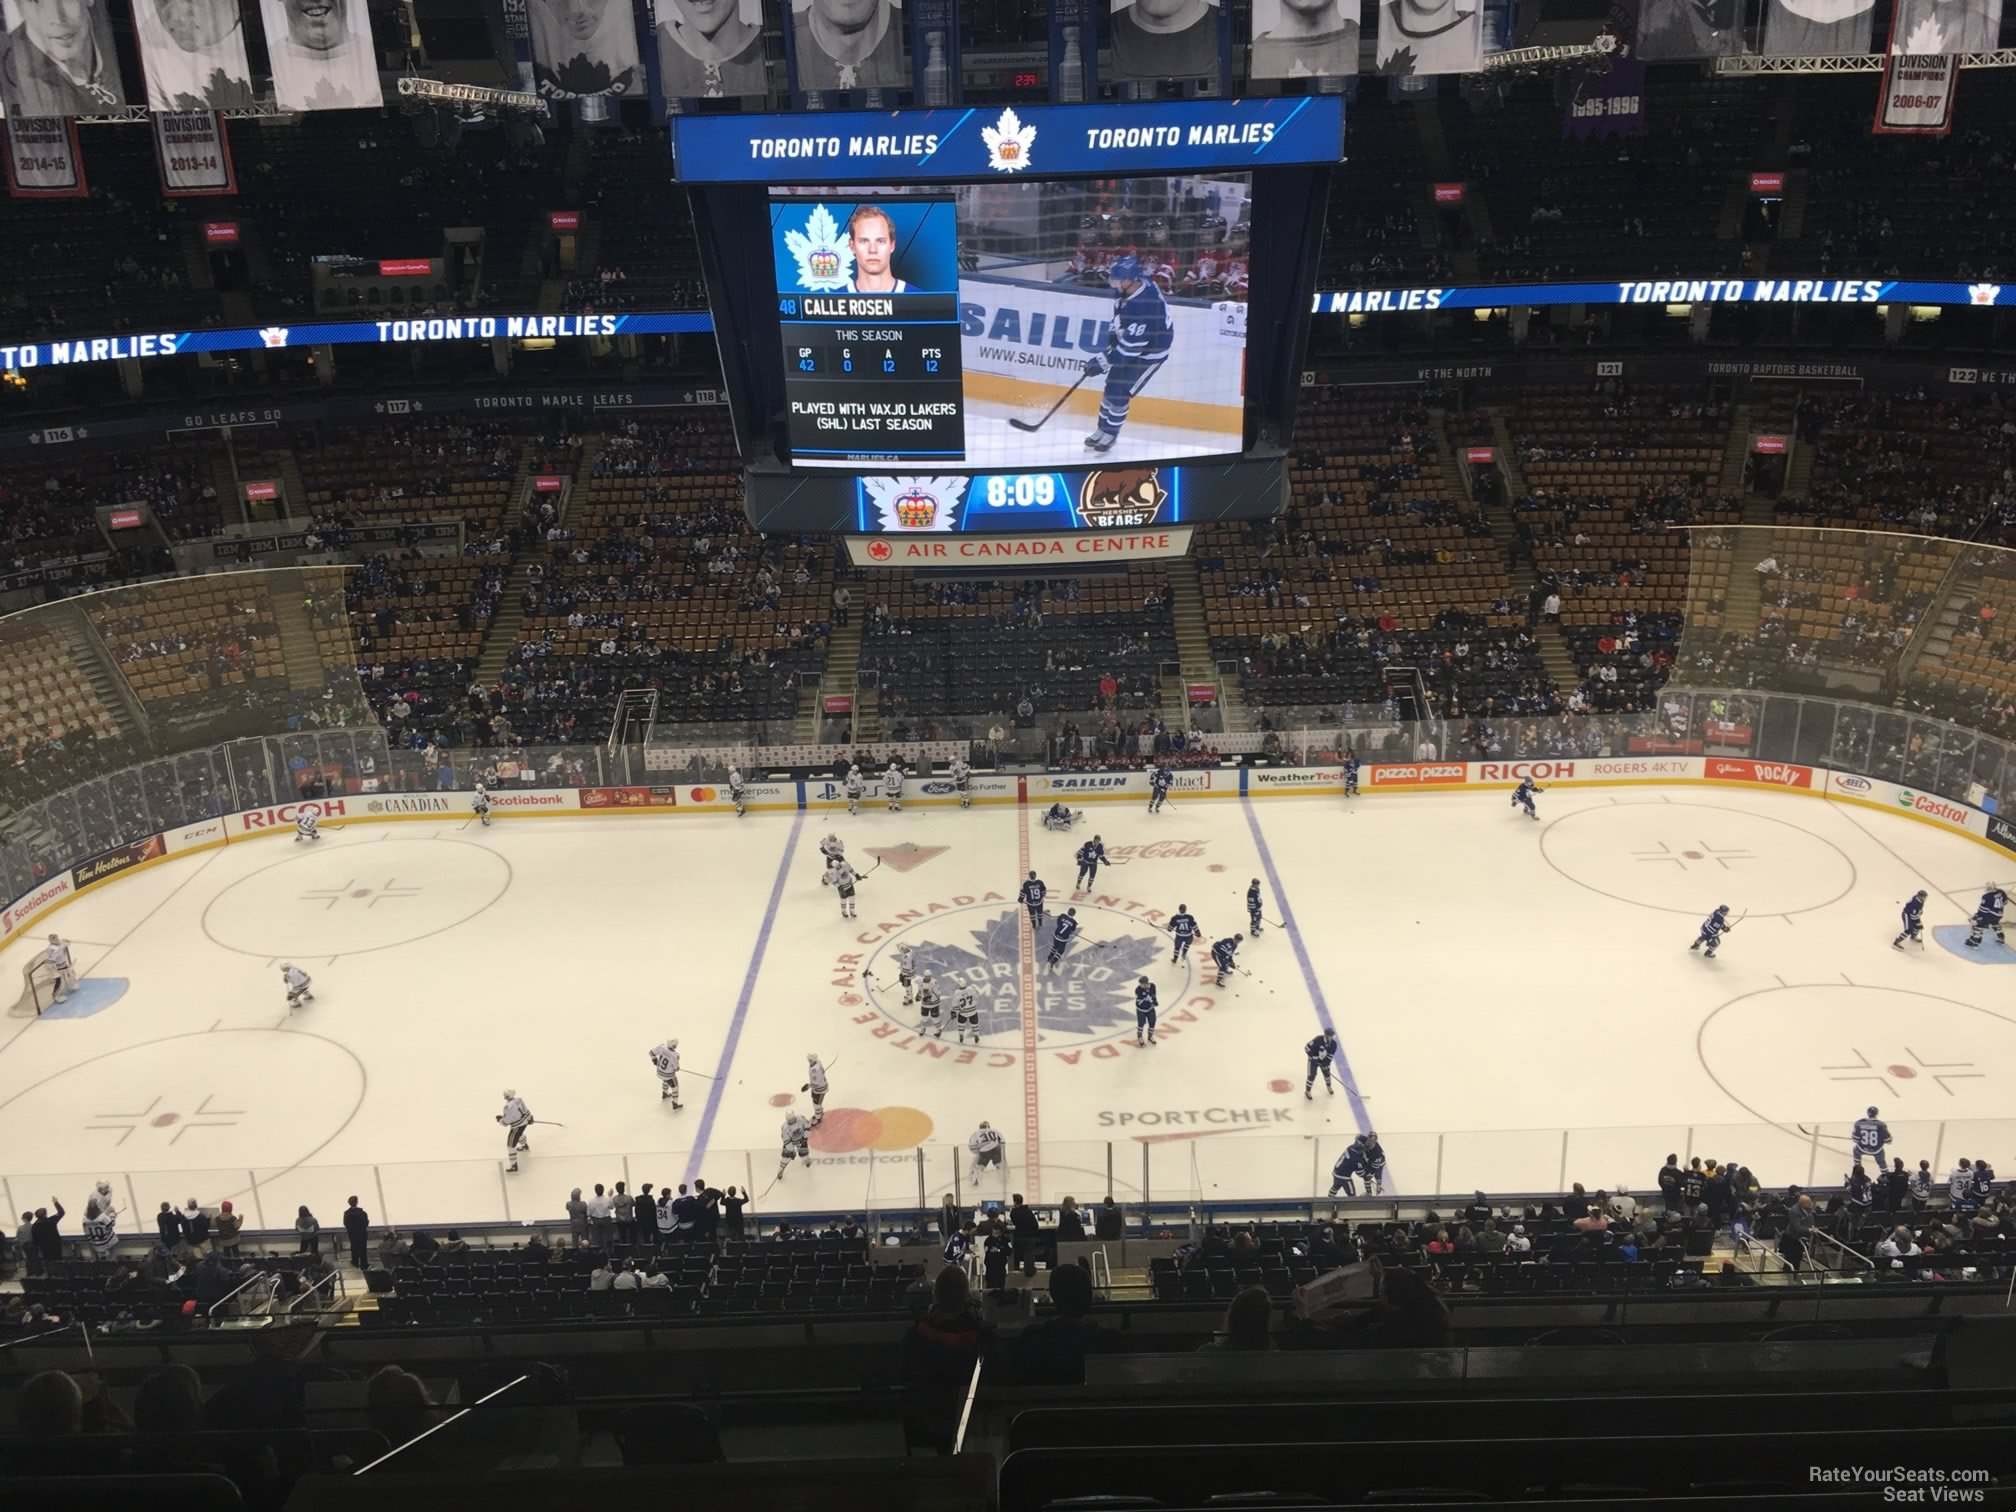 Toronto Maple Leafs Seat View for Scotiabank Arena Section 309, Row 10